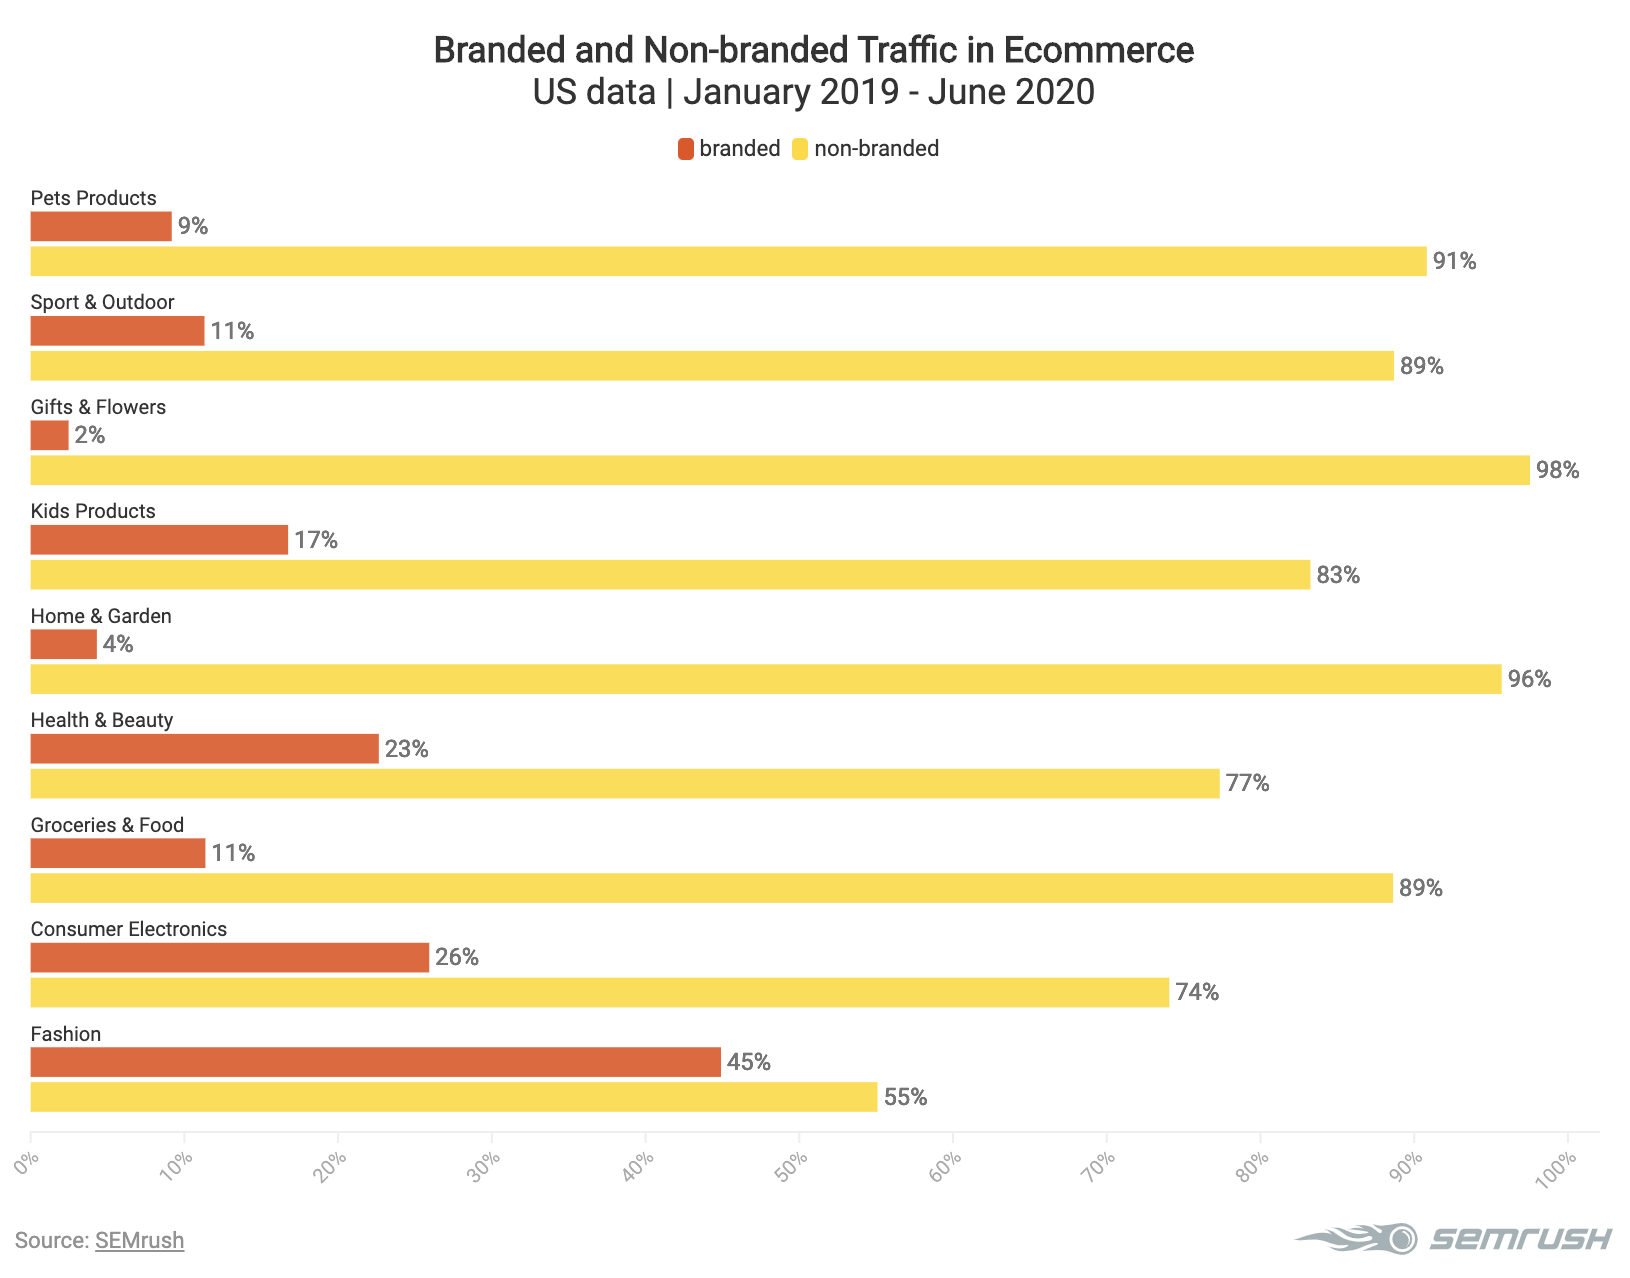 Branded and non-branded traffic in different ecommerce categories